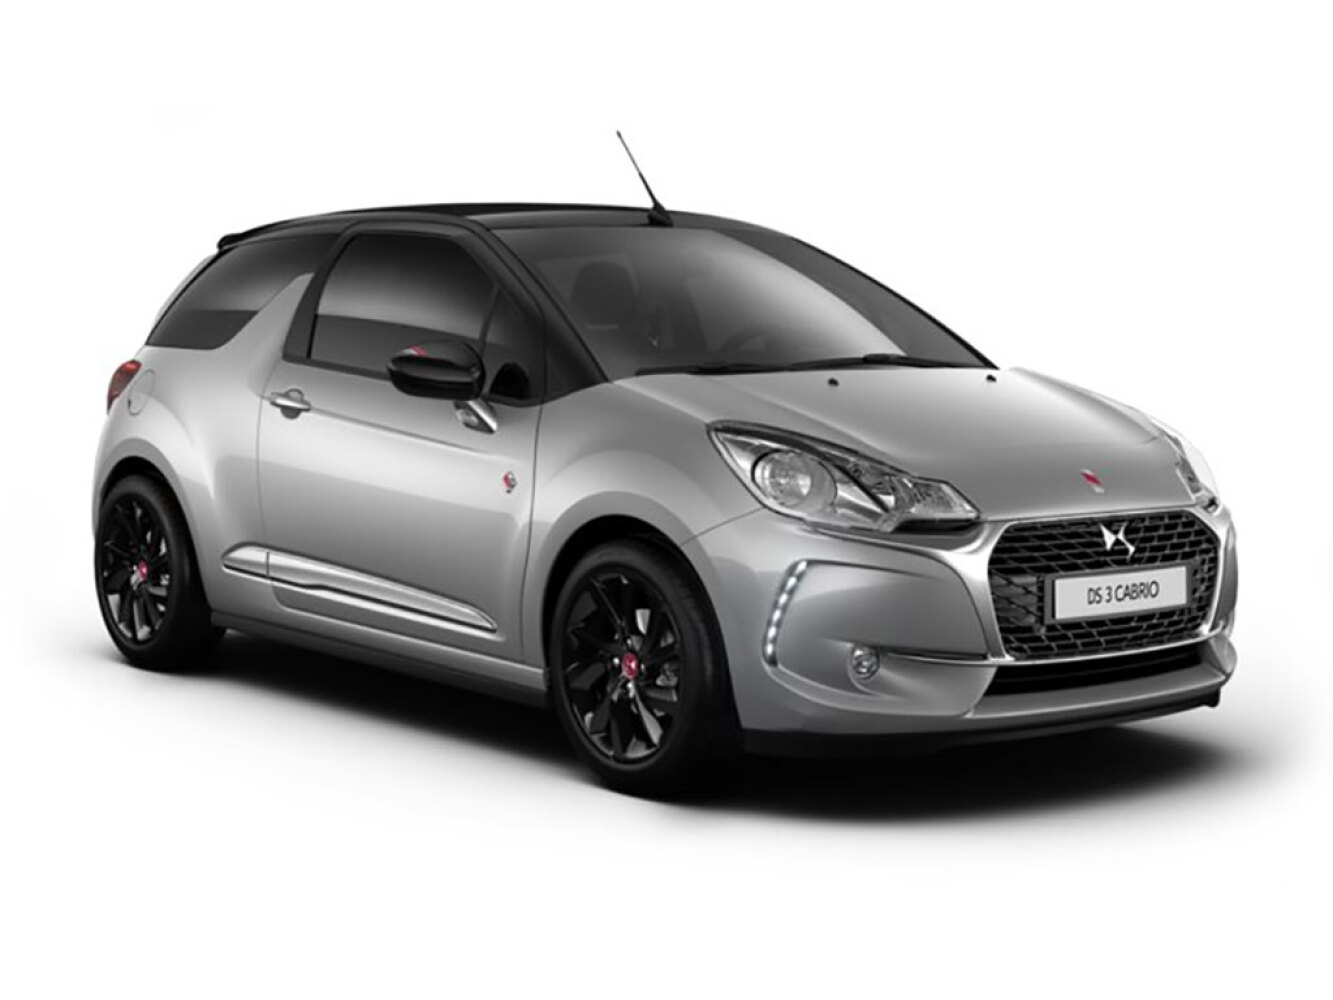 new ds 3 1 2 puretech performance line 2dr eat6 petrol cabriolet for sale bristol street. Black Bedroom Furniture Sets. Home Design Ideas